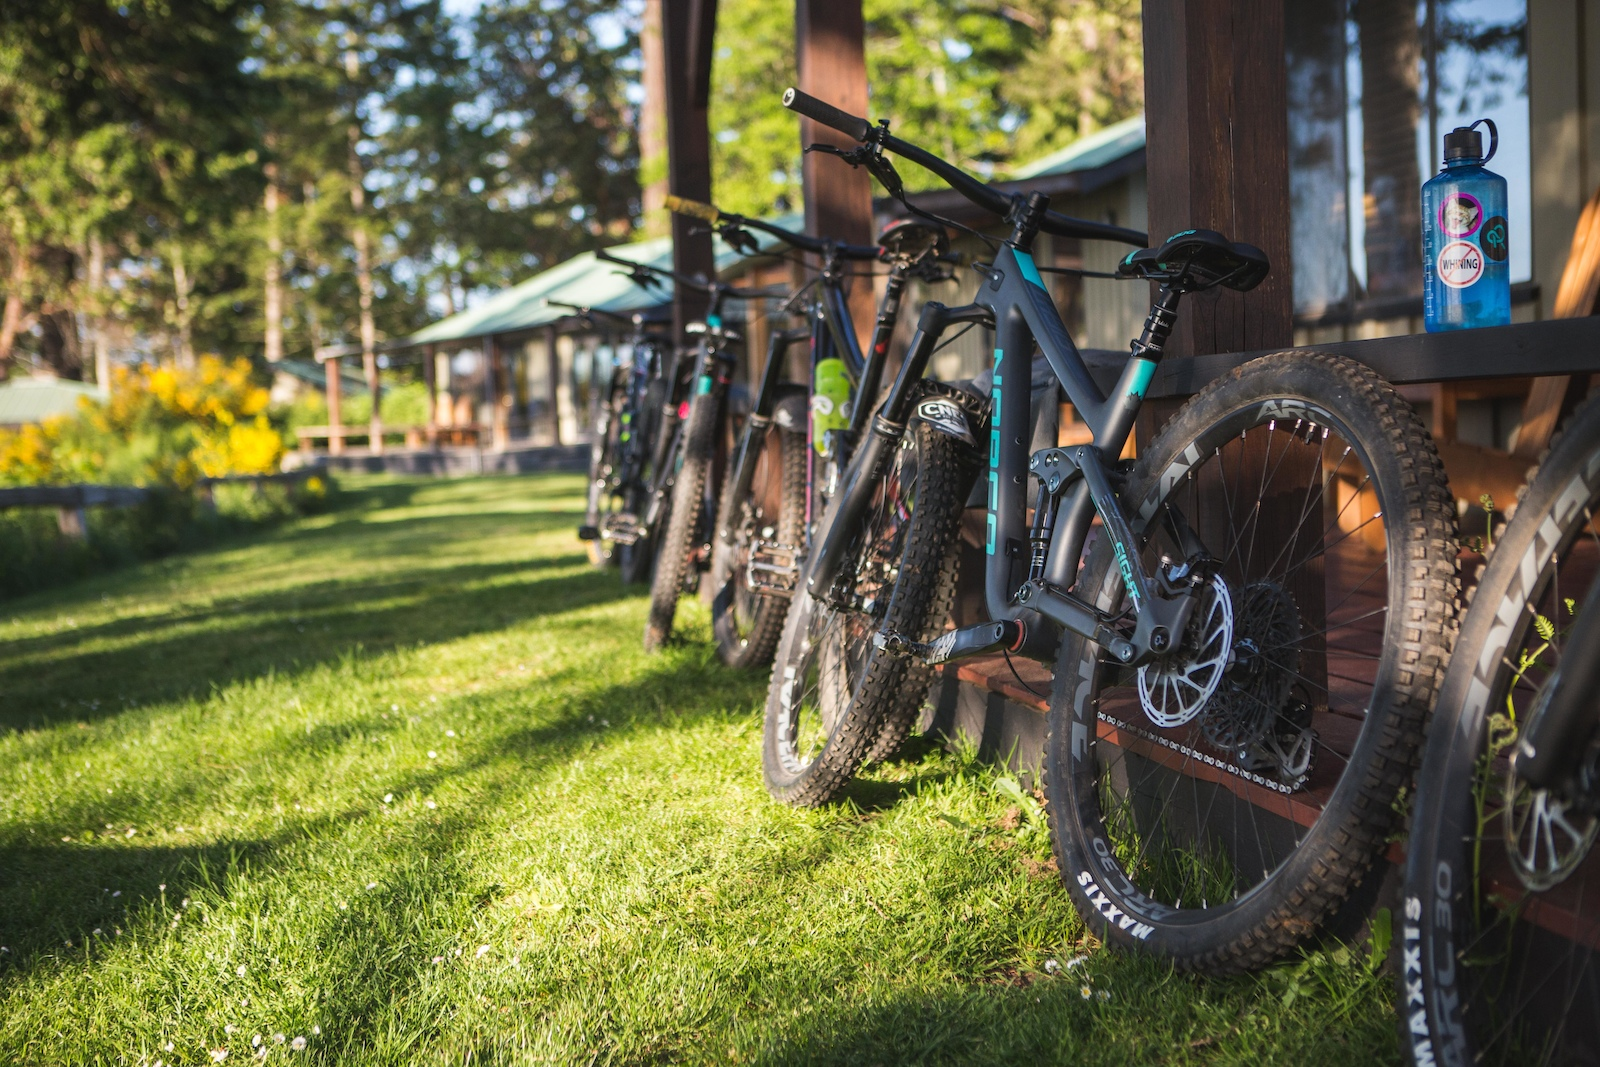 Weekend escape to Hornby Island with the Norco Bicycles women s ambassadors